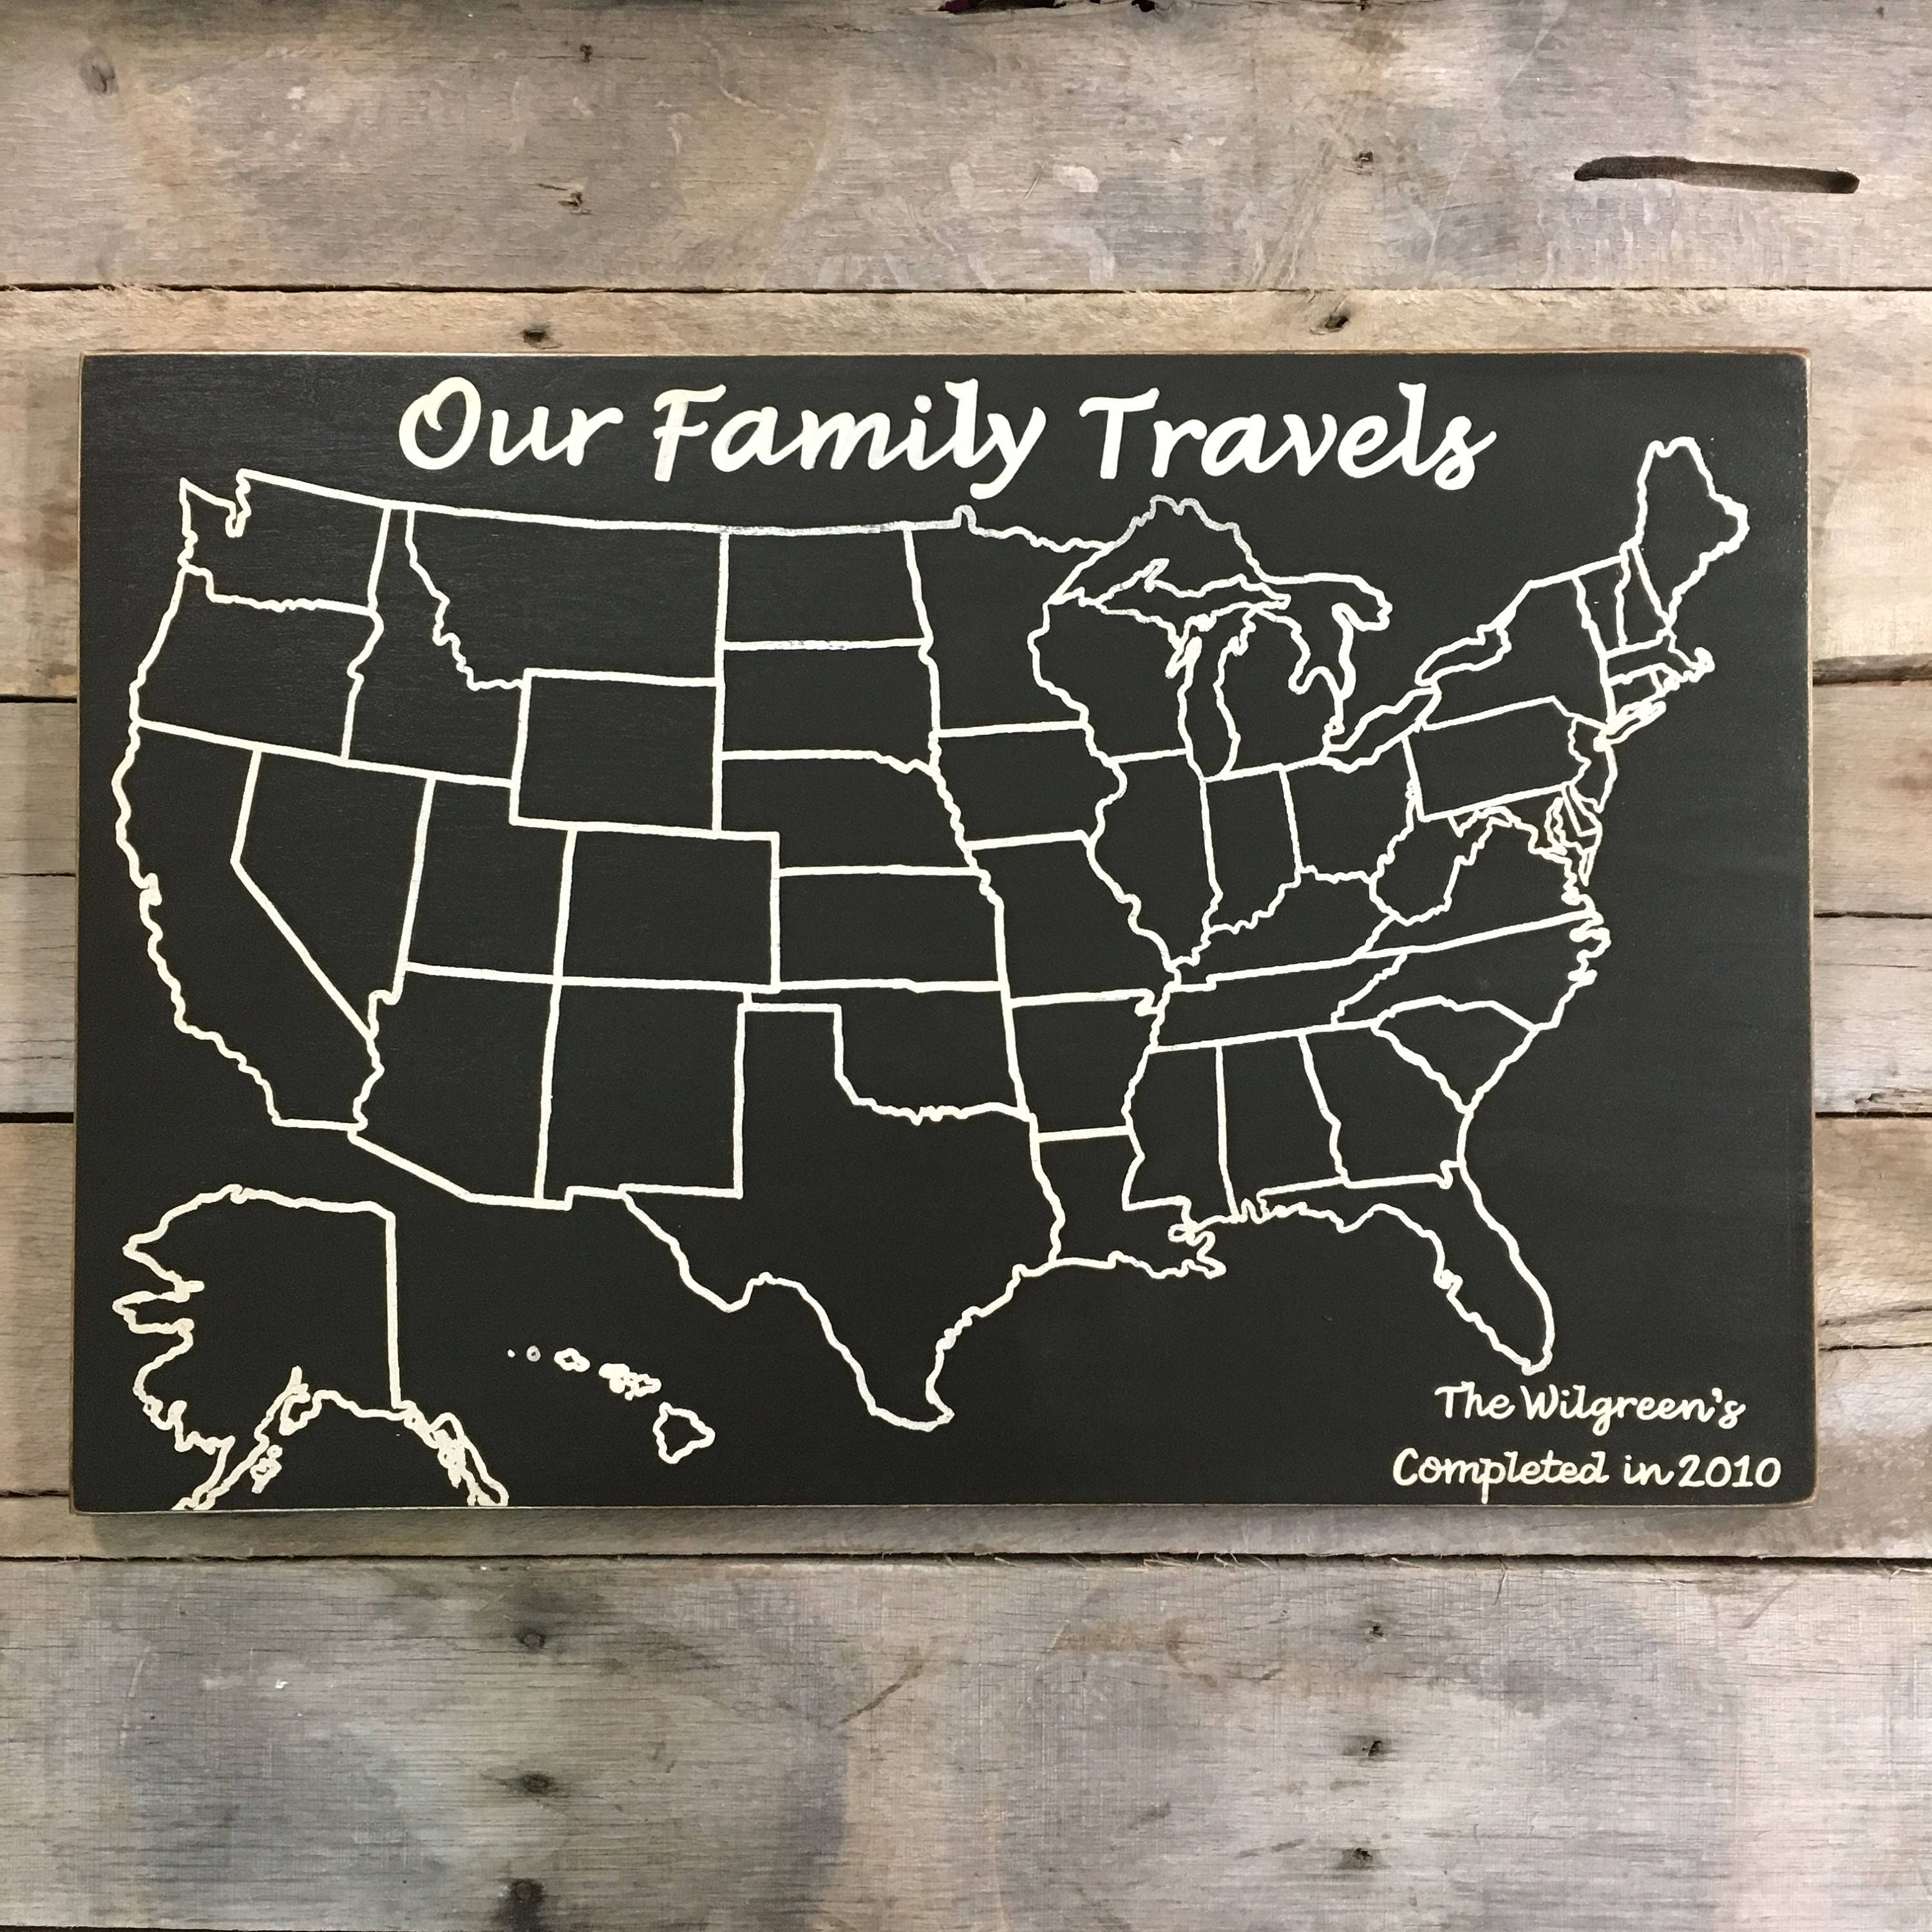 Personalized Us Map.Travel Map Adventure Map Our Family Travels Us Wood Map Etsy